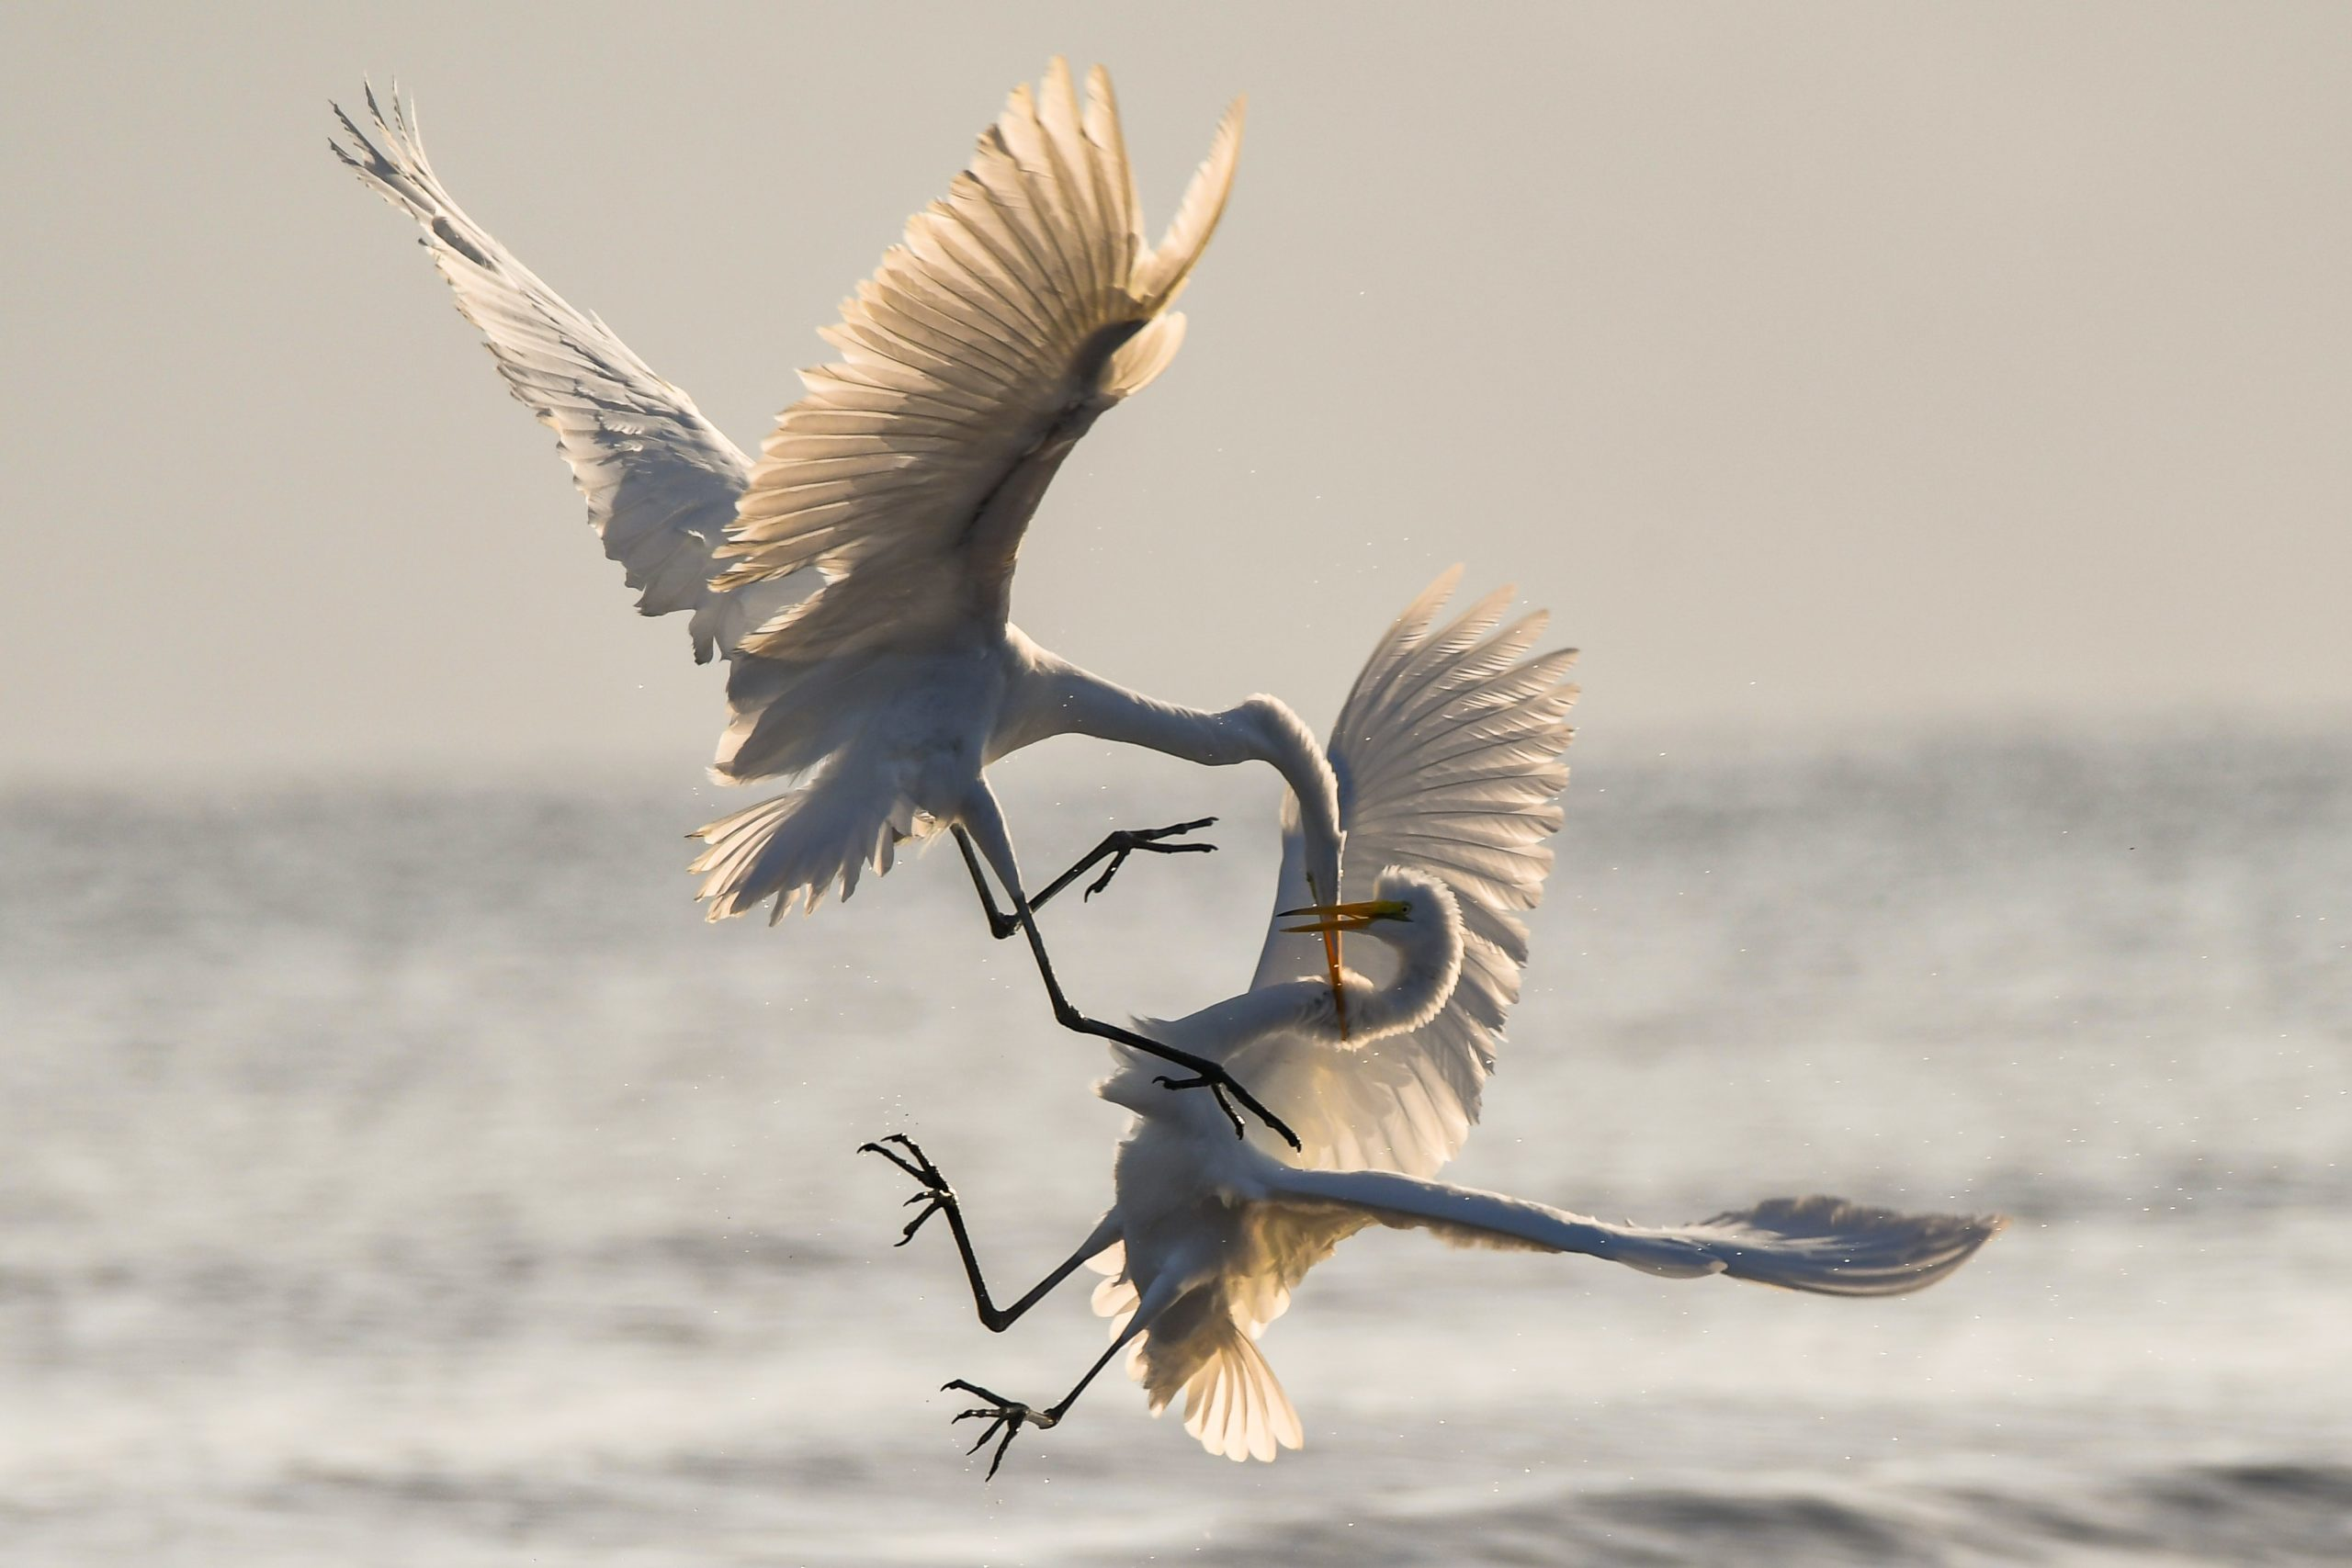 Two cranes fighting in mid air above the sea